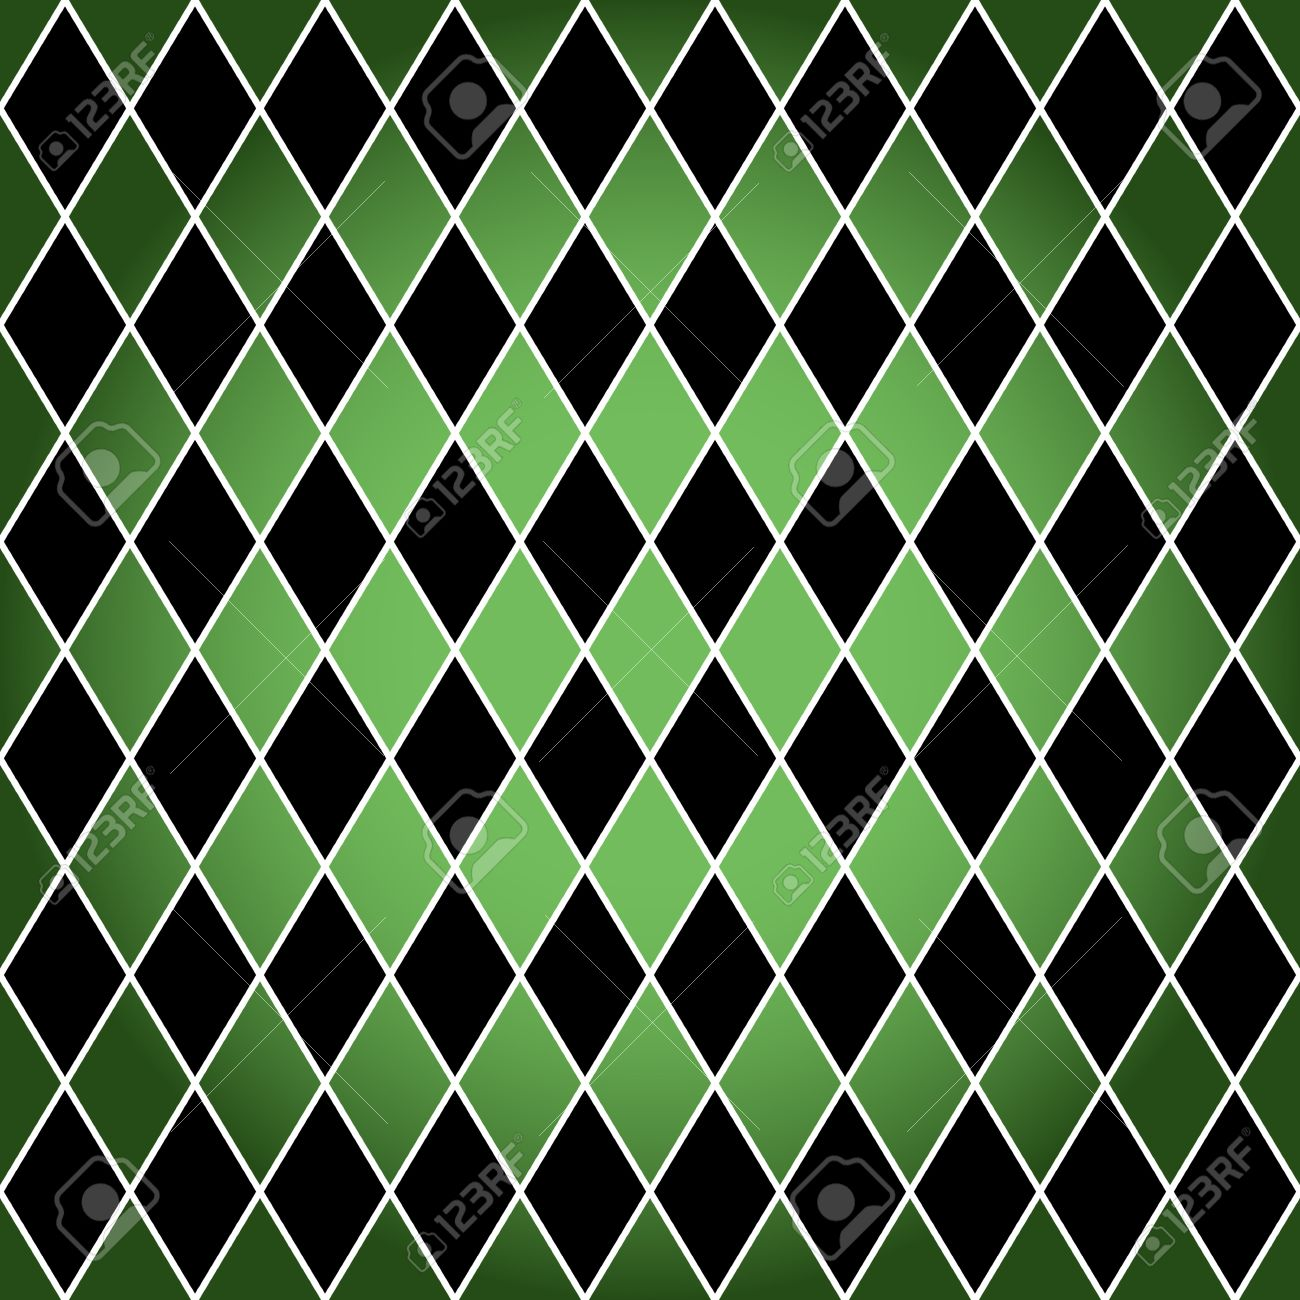 Pics photos merry christmas argyle twitter backgrounds - Argyle Seamless Harlequin Or Argyle Pattern Made Of Black Diamonds With White Border Over Green